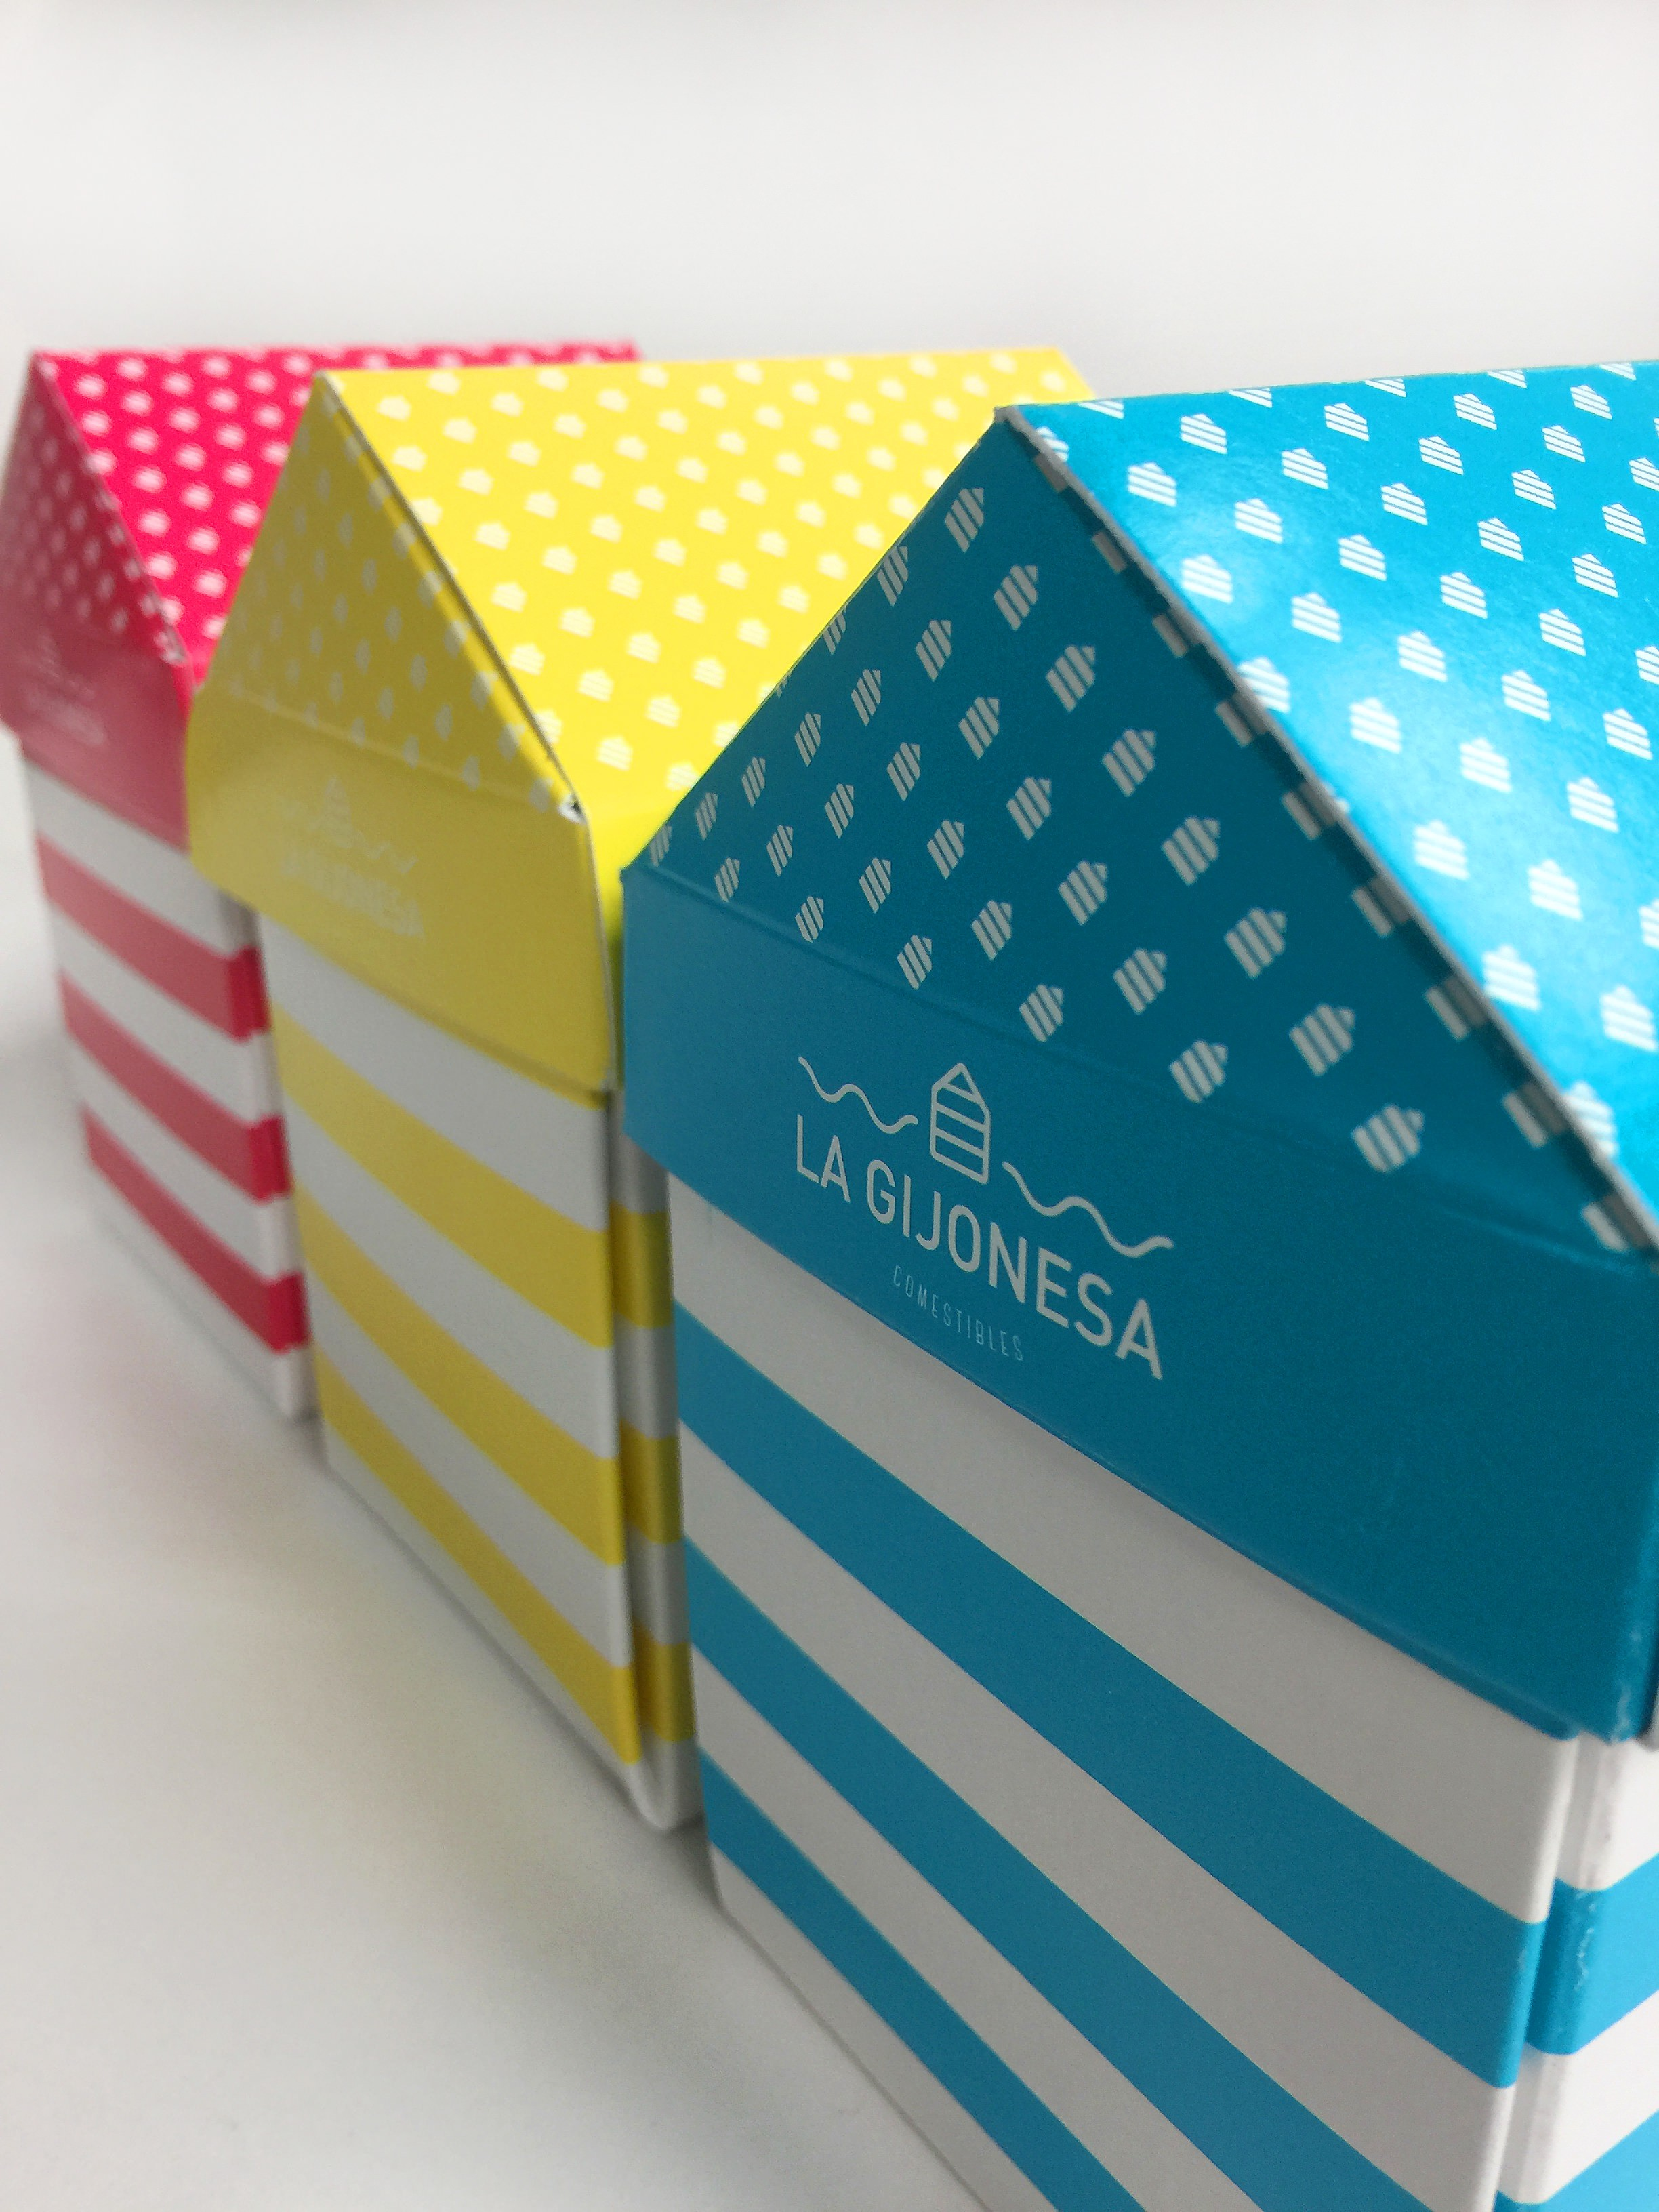 packaging la gijonesa